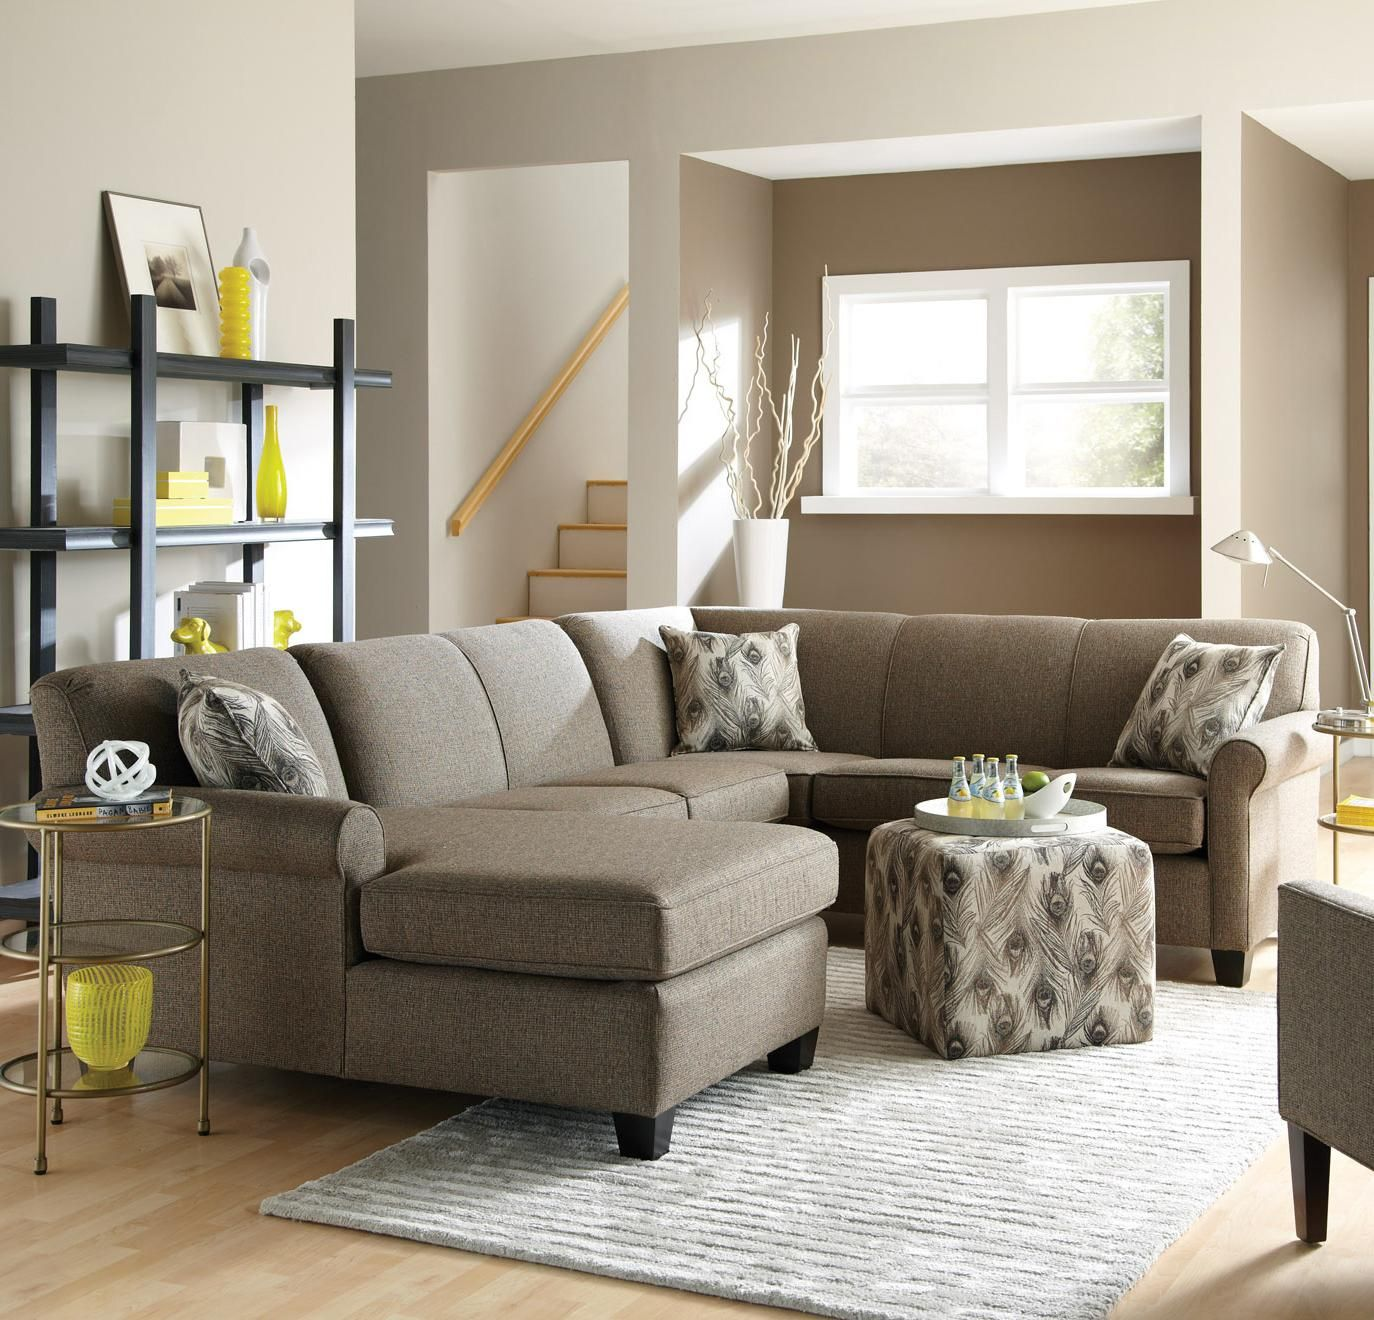 Best This Long Sectional Sofa Is An Ideal Choice For Family 640 x 480